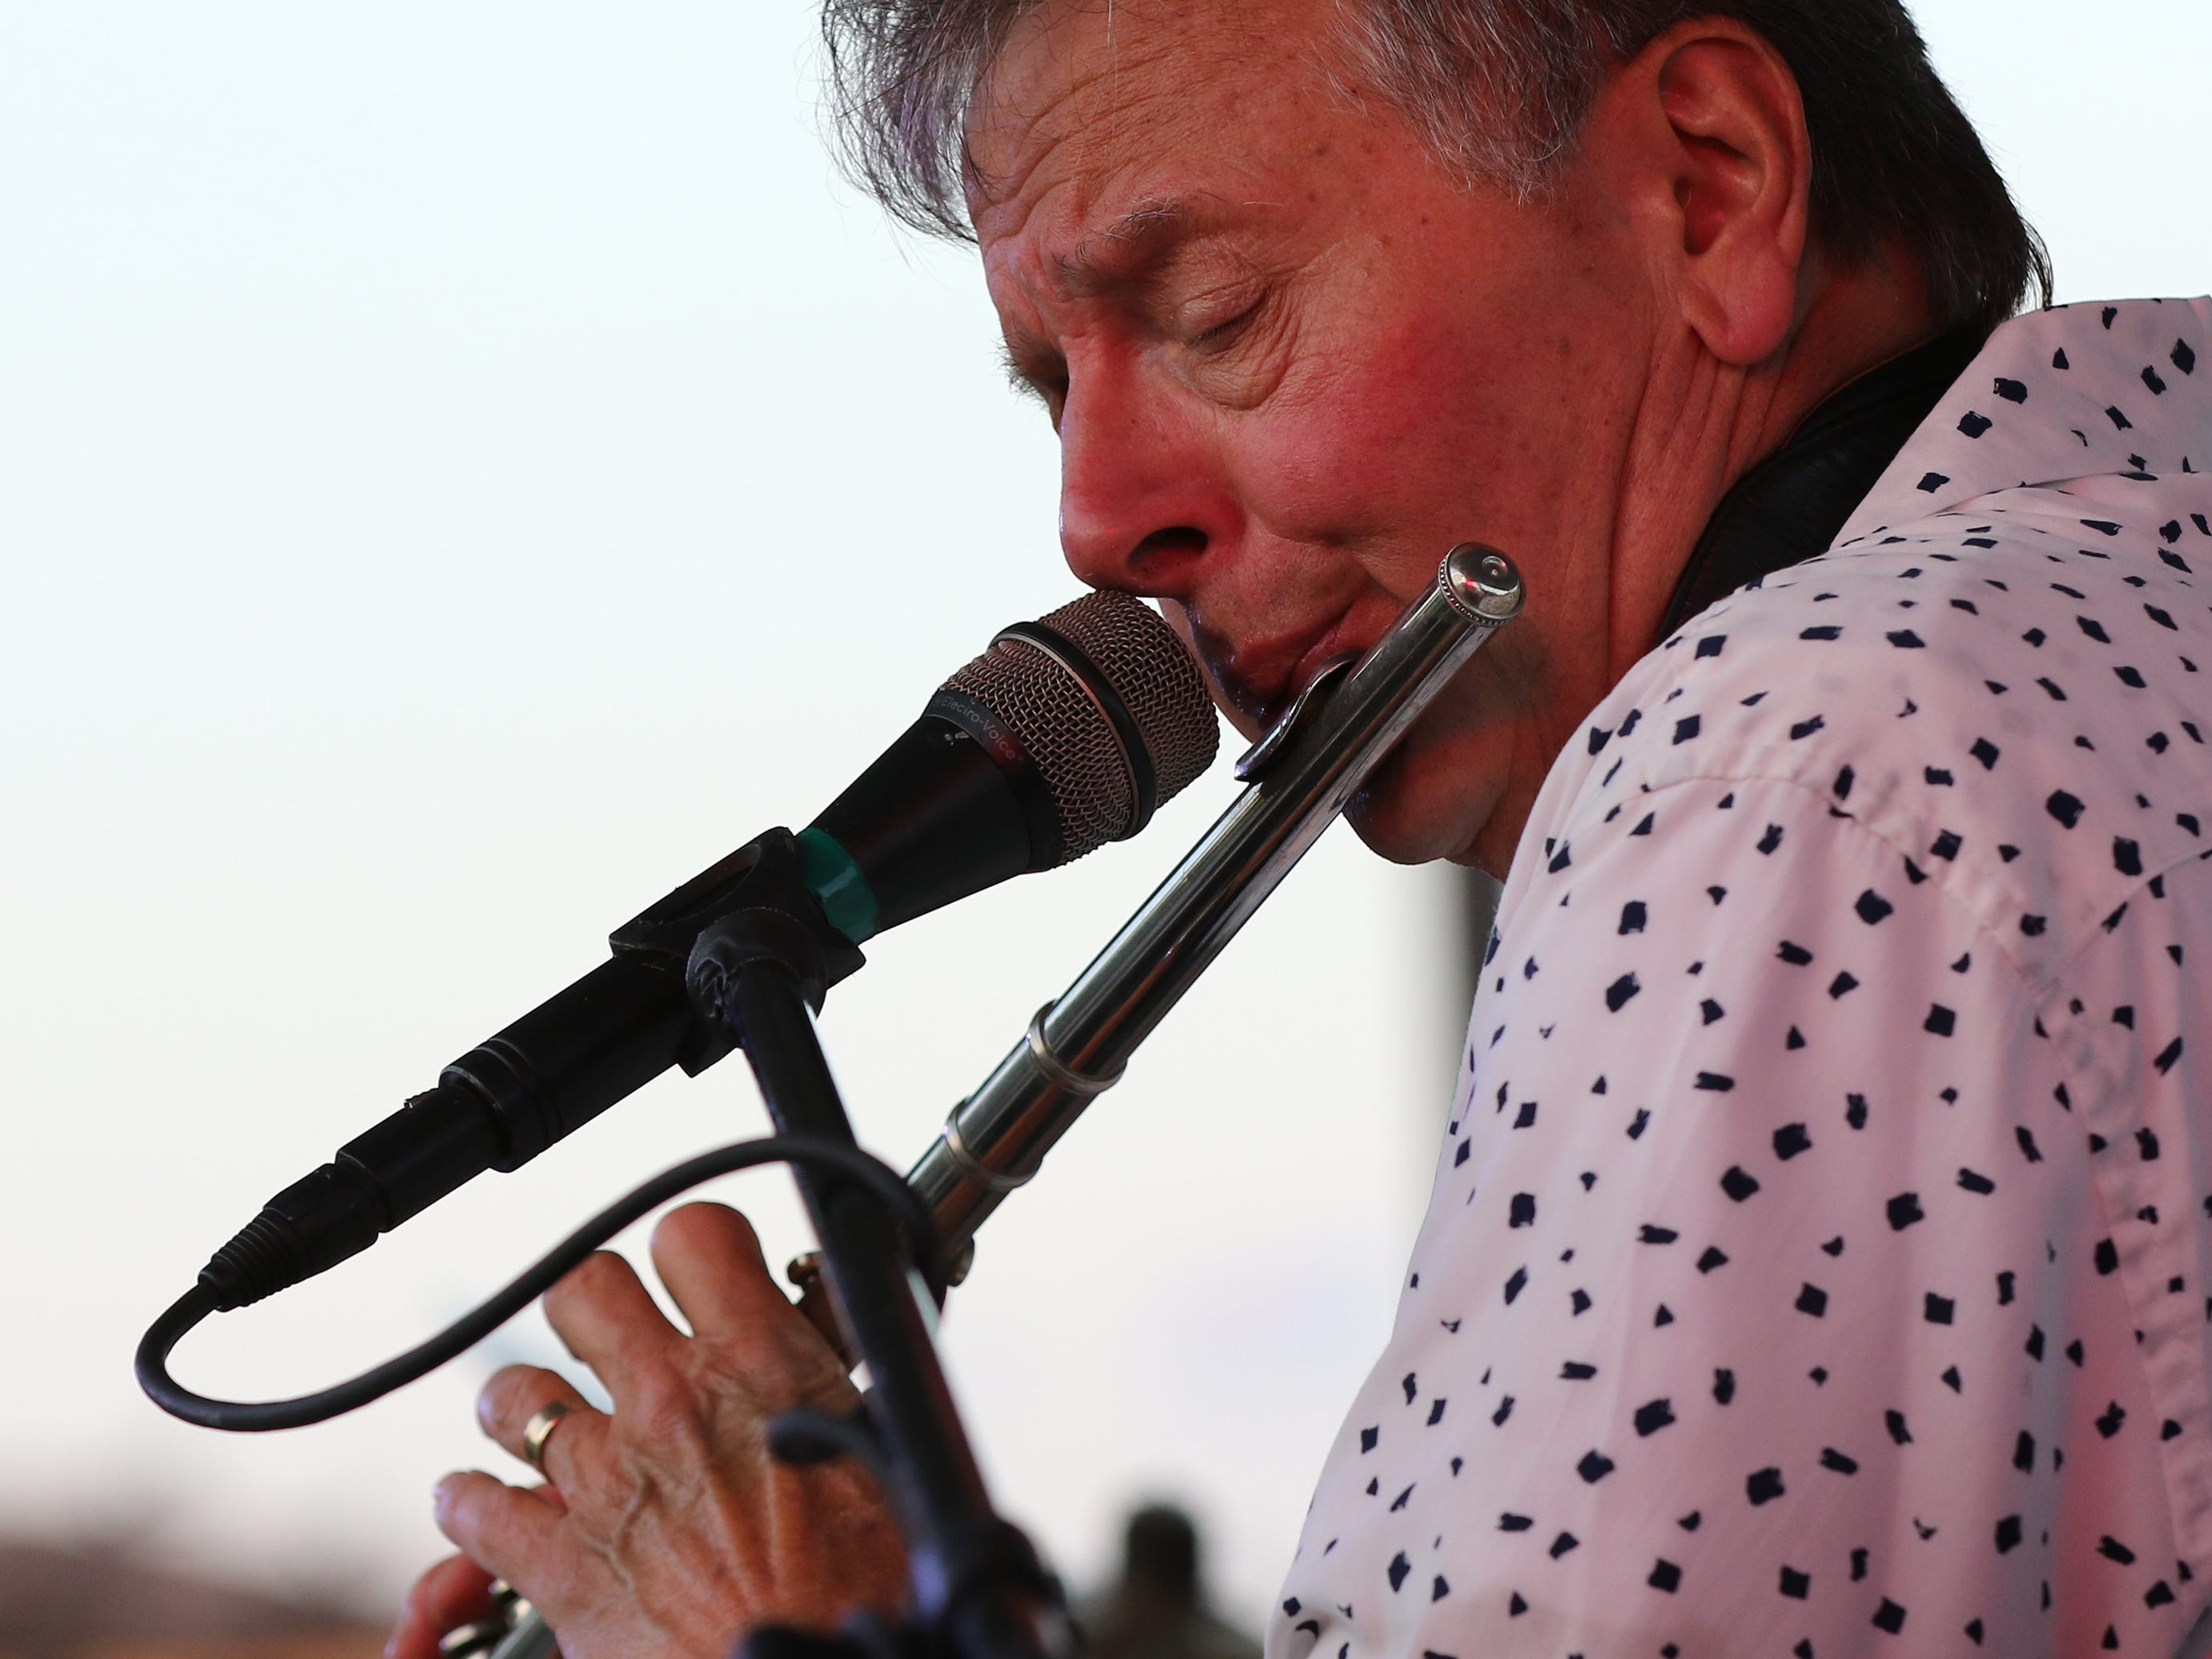 Warren Wiegratz performs with Streetlife with at a New Berlin Concerts at City Center on Aug. 8.